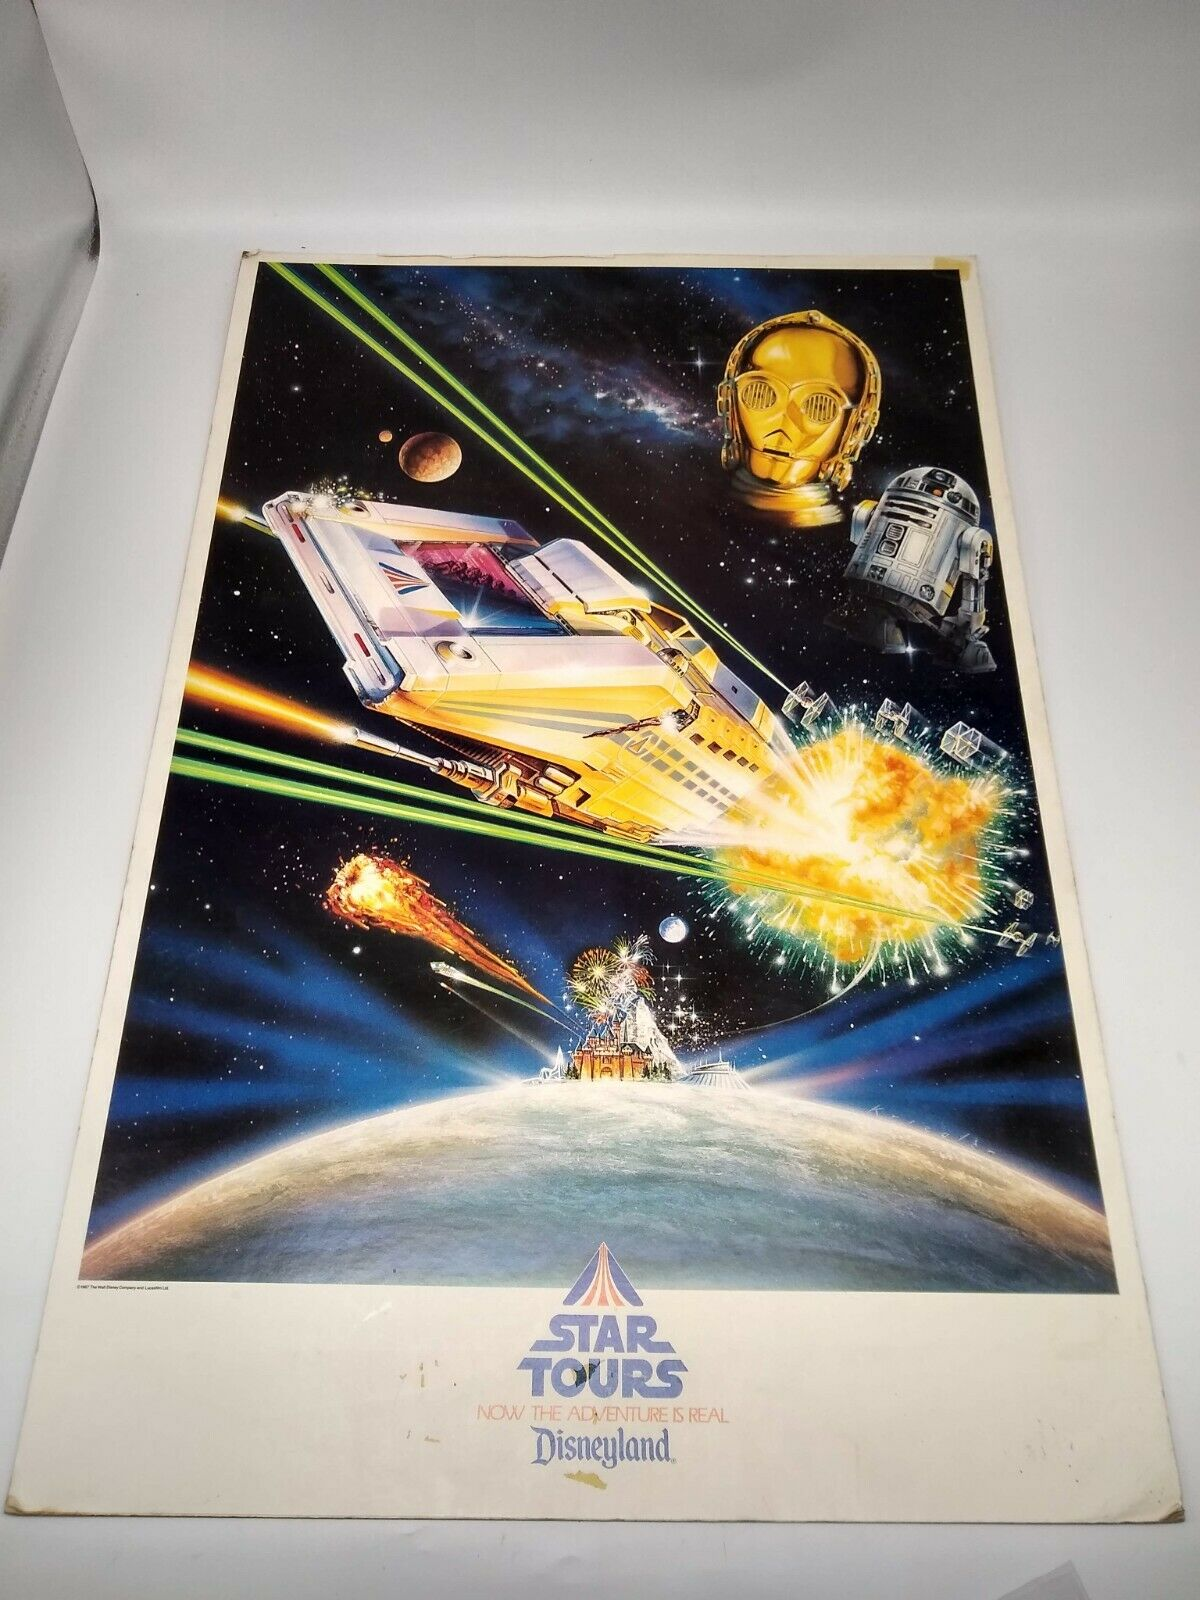 Vintage Star Wars Disneyland Star Tours Sign with C3PO and R2D2 - 30